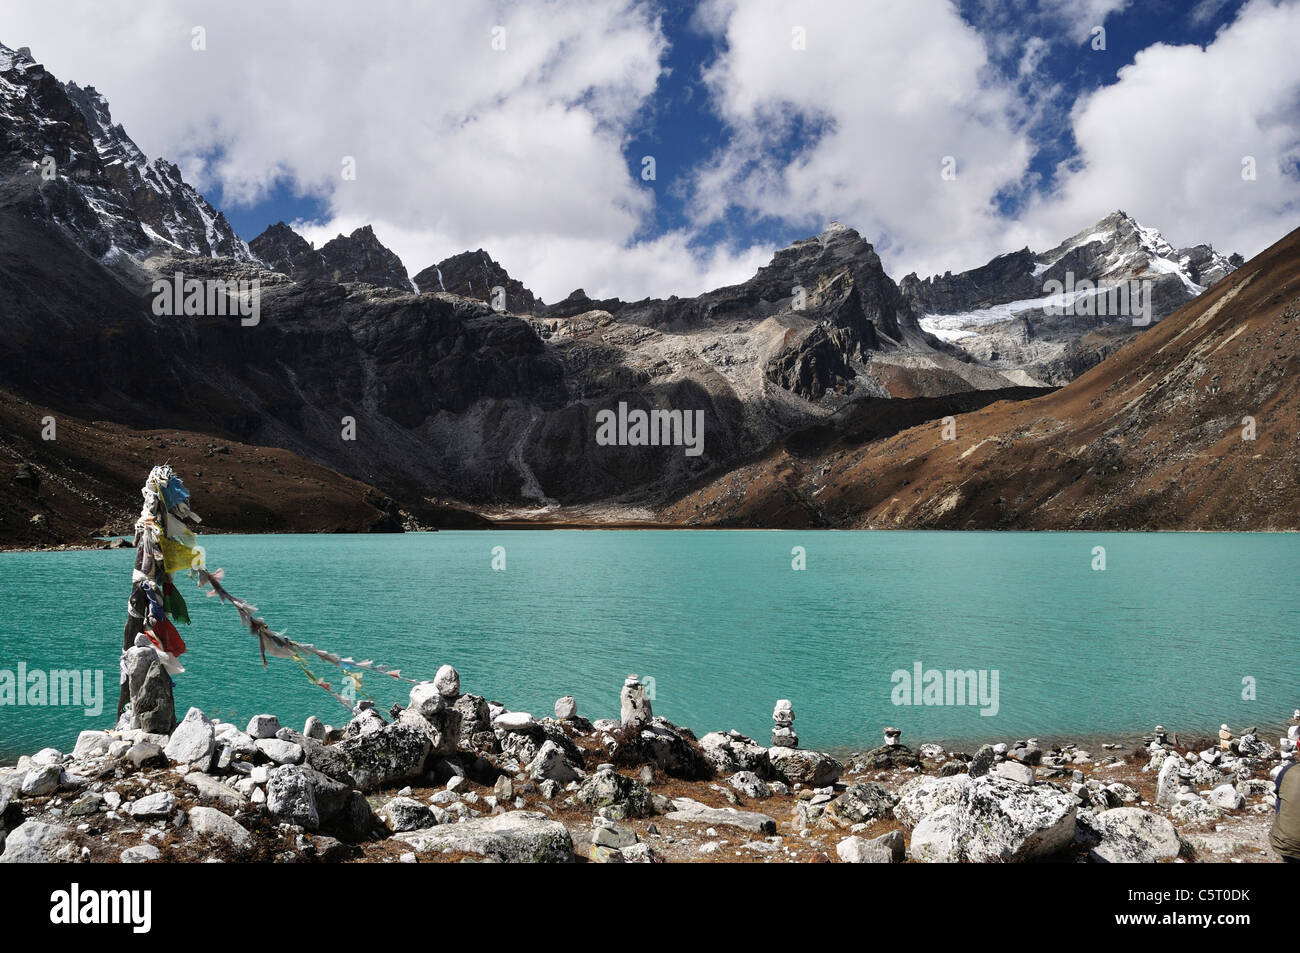 Asia, Nepal, Eastern Region, View of mountian ranges with gokyo lakes - Stock Image